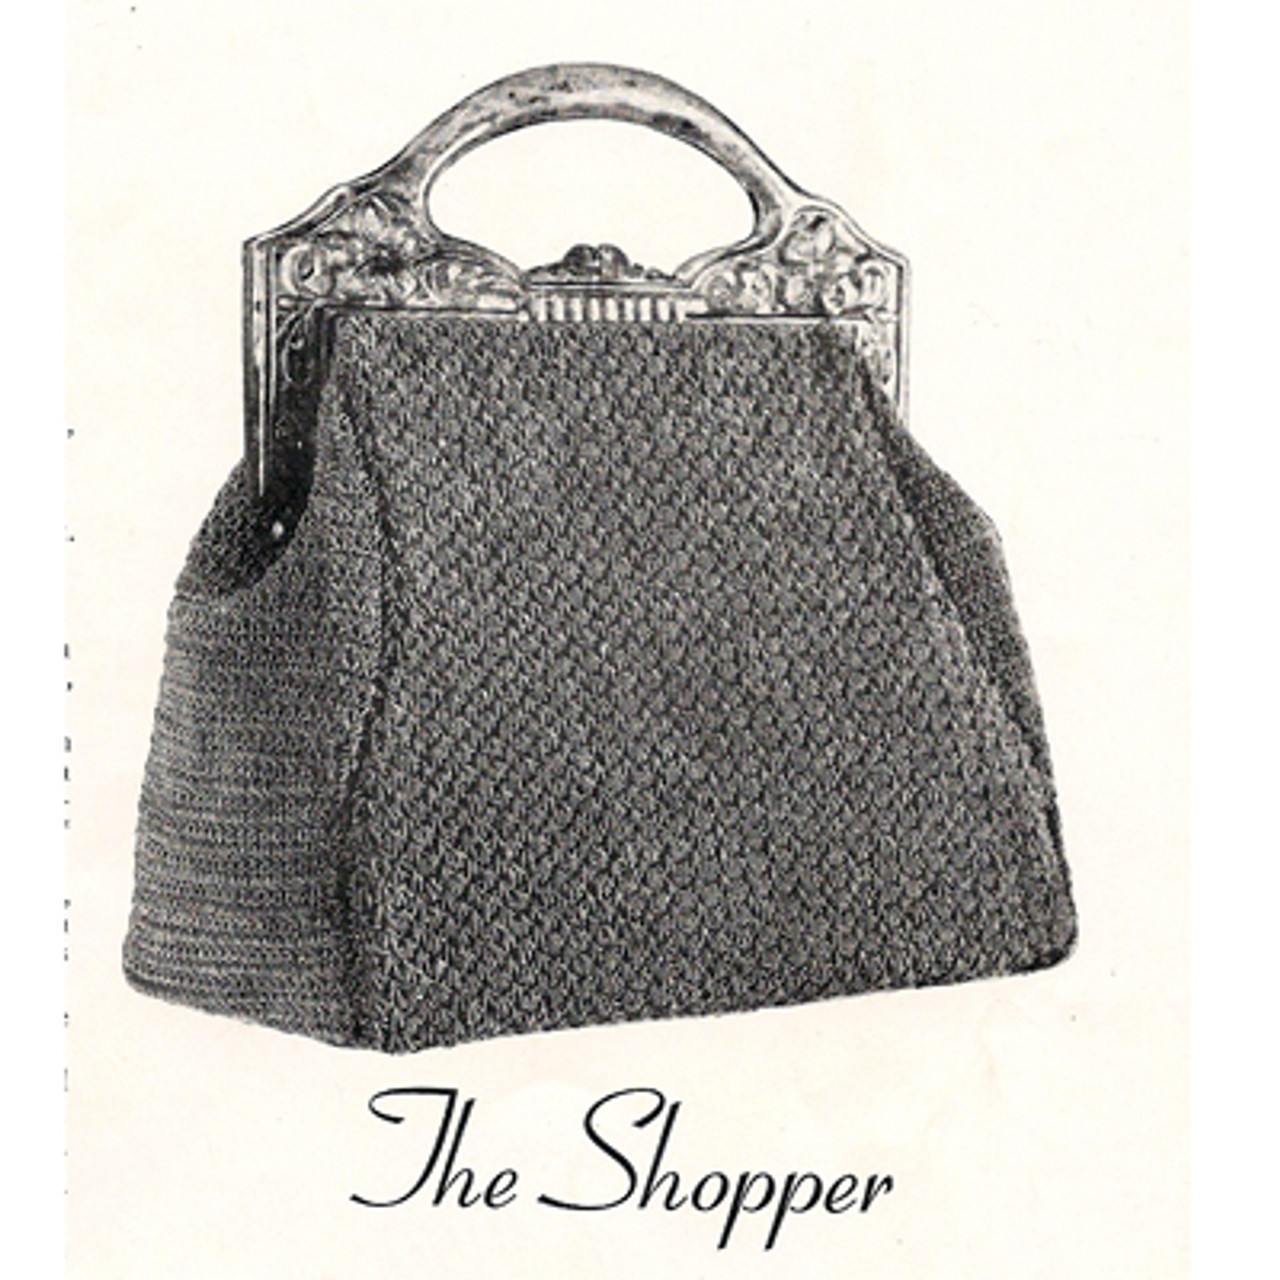 Large Crochet Handbag in Guimp, Vintage 1930s